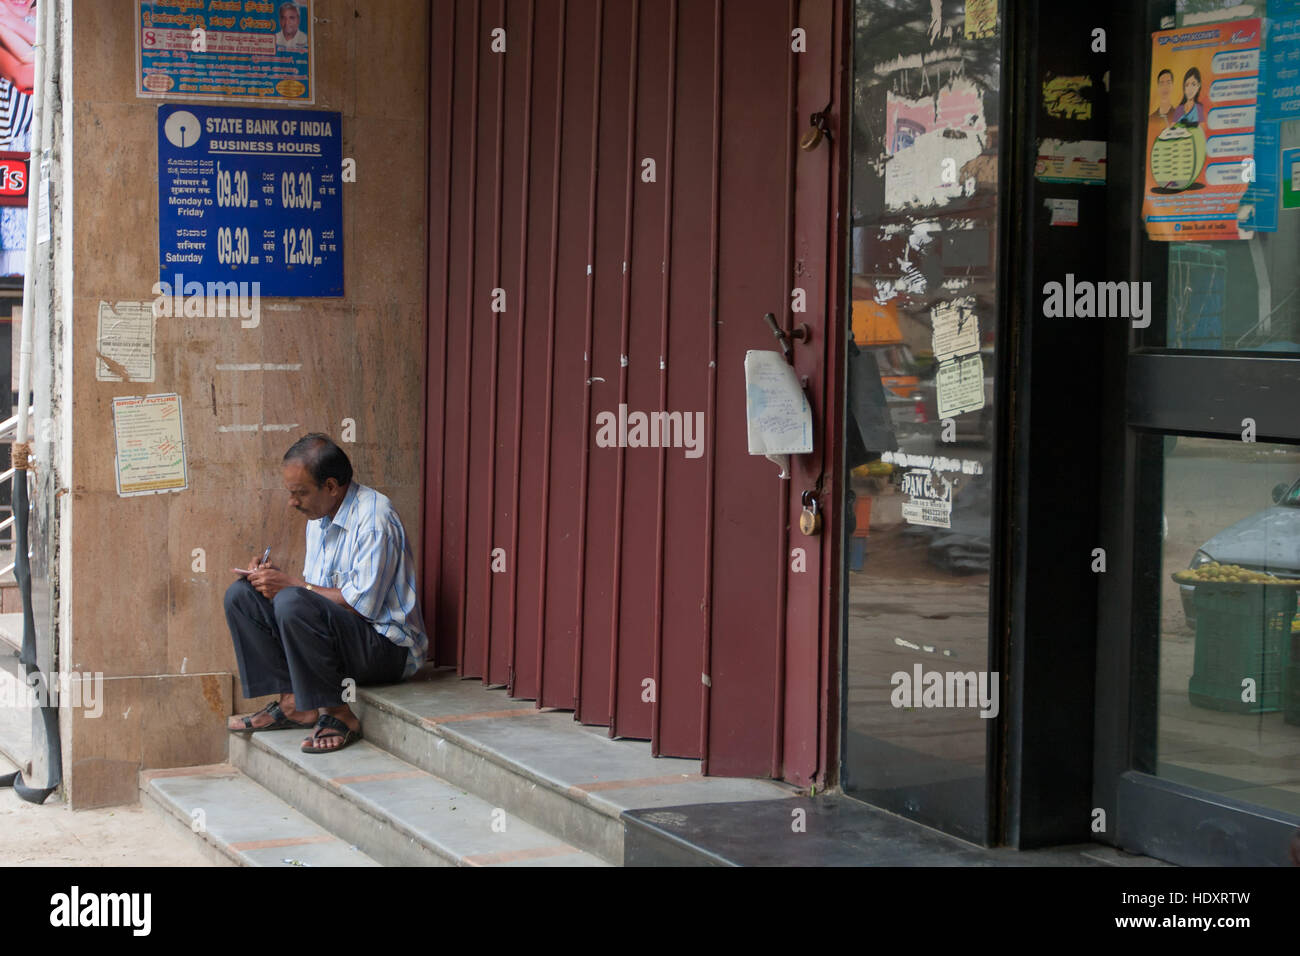 Man waiting in front of a bank to open, Bangalore, India (photo taken before demonetization 2016) - Stock Image